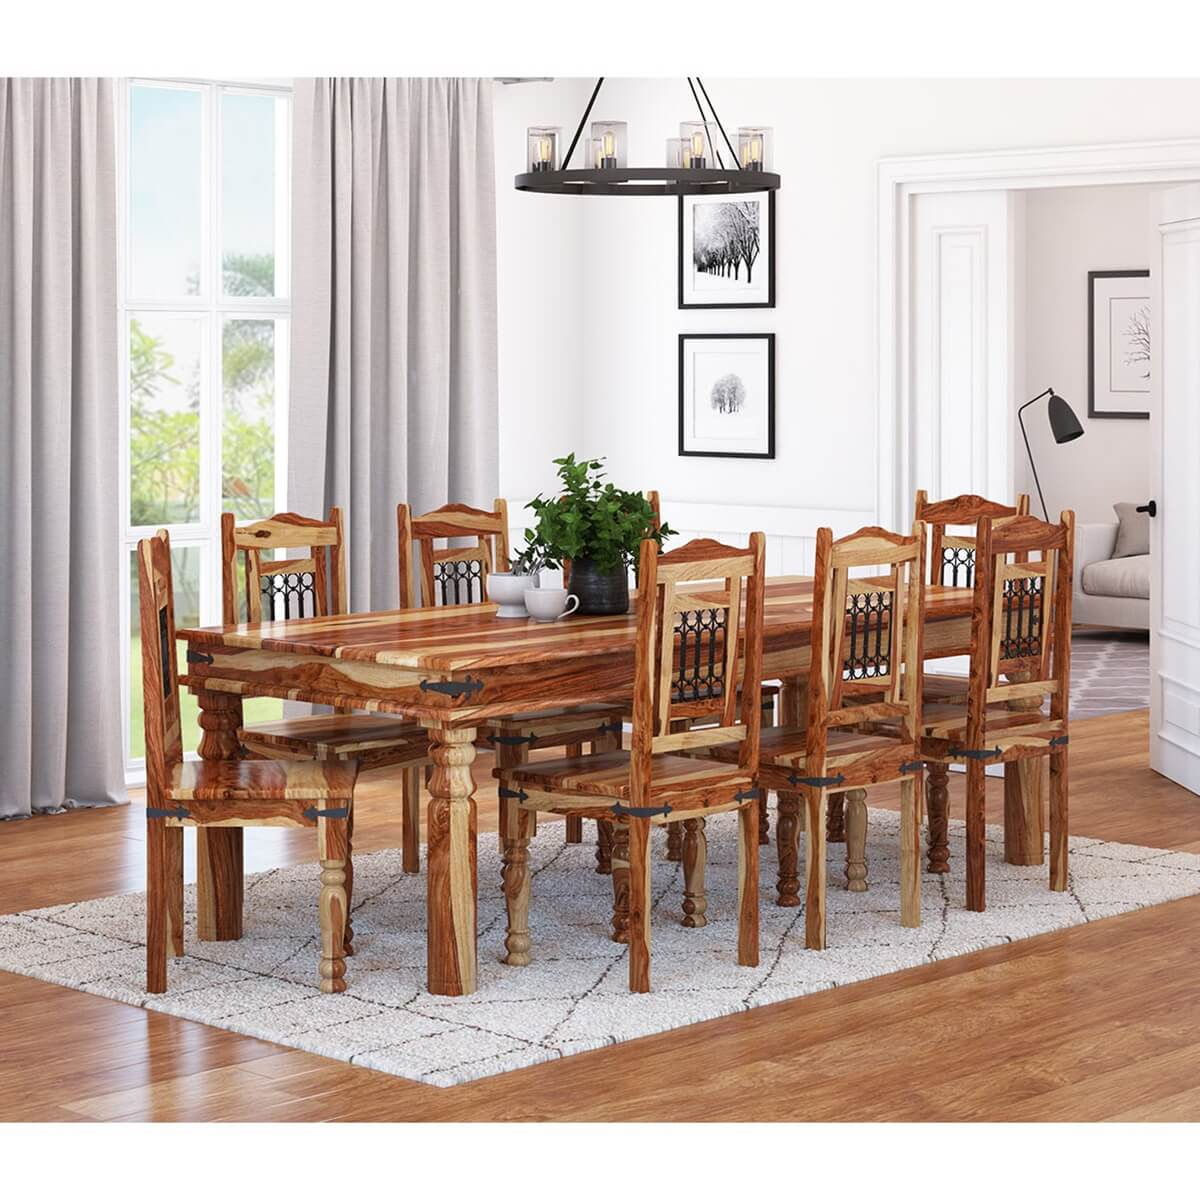 Dallas Classic Solid Wood Rustic Dining Room Table And Chair Set